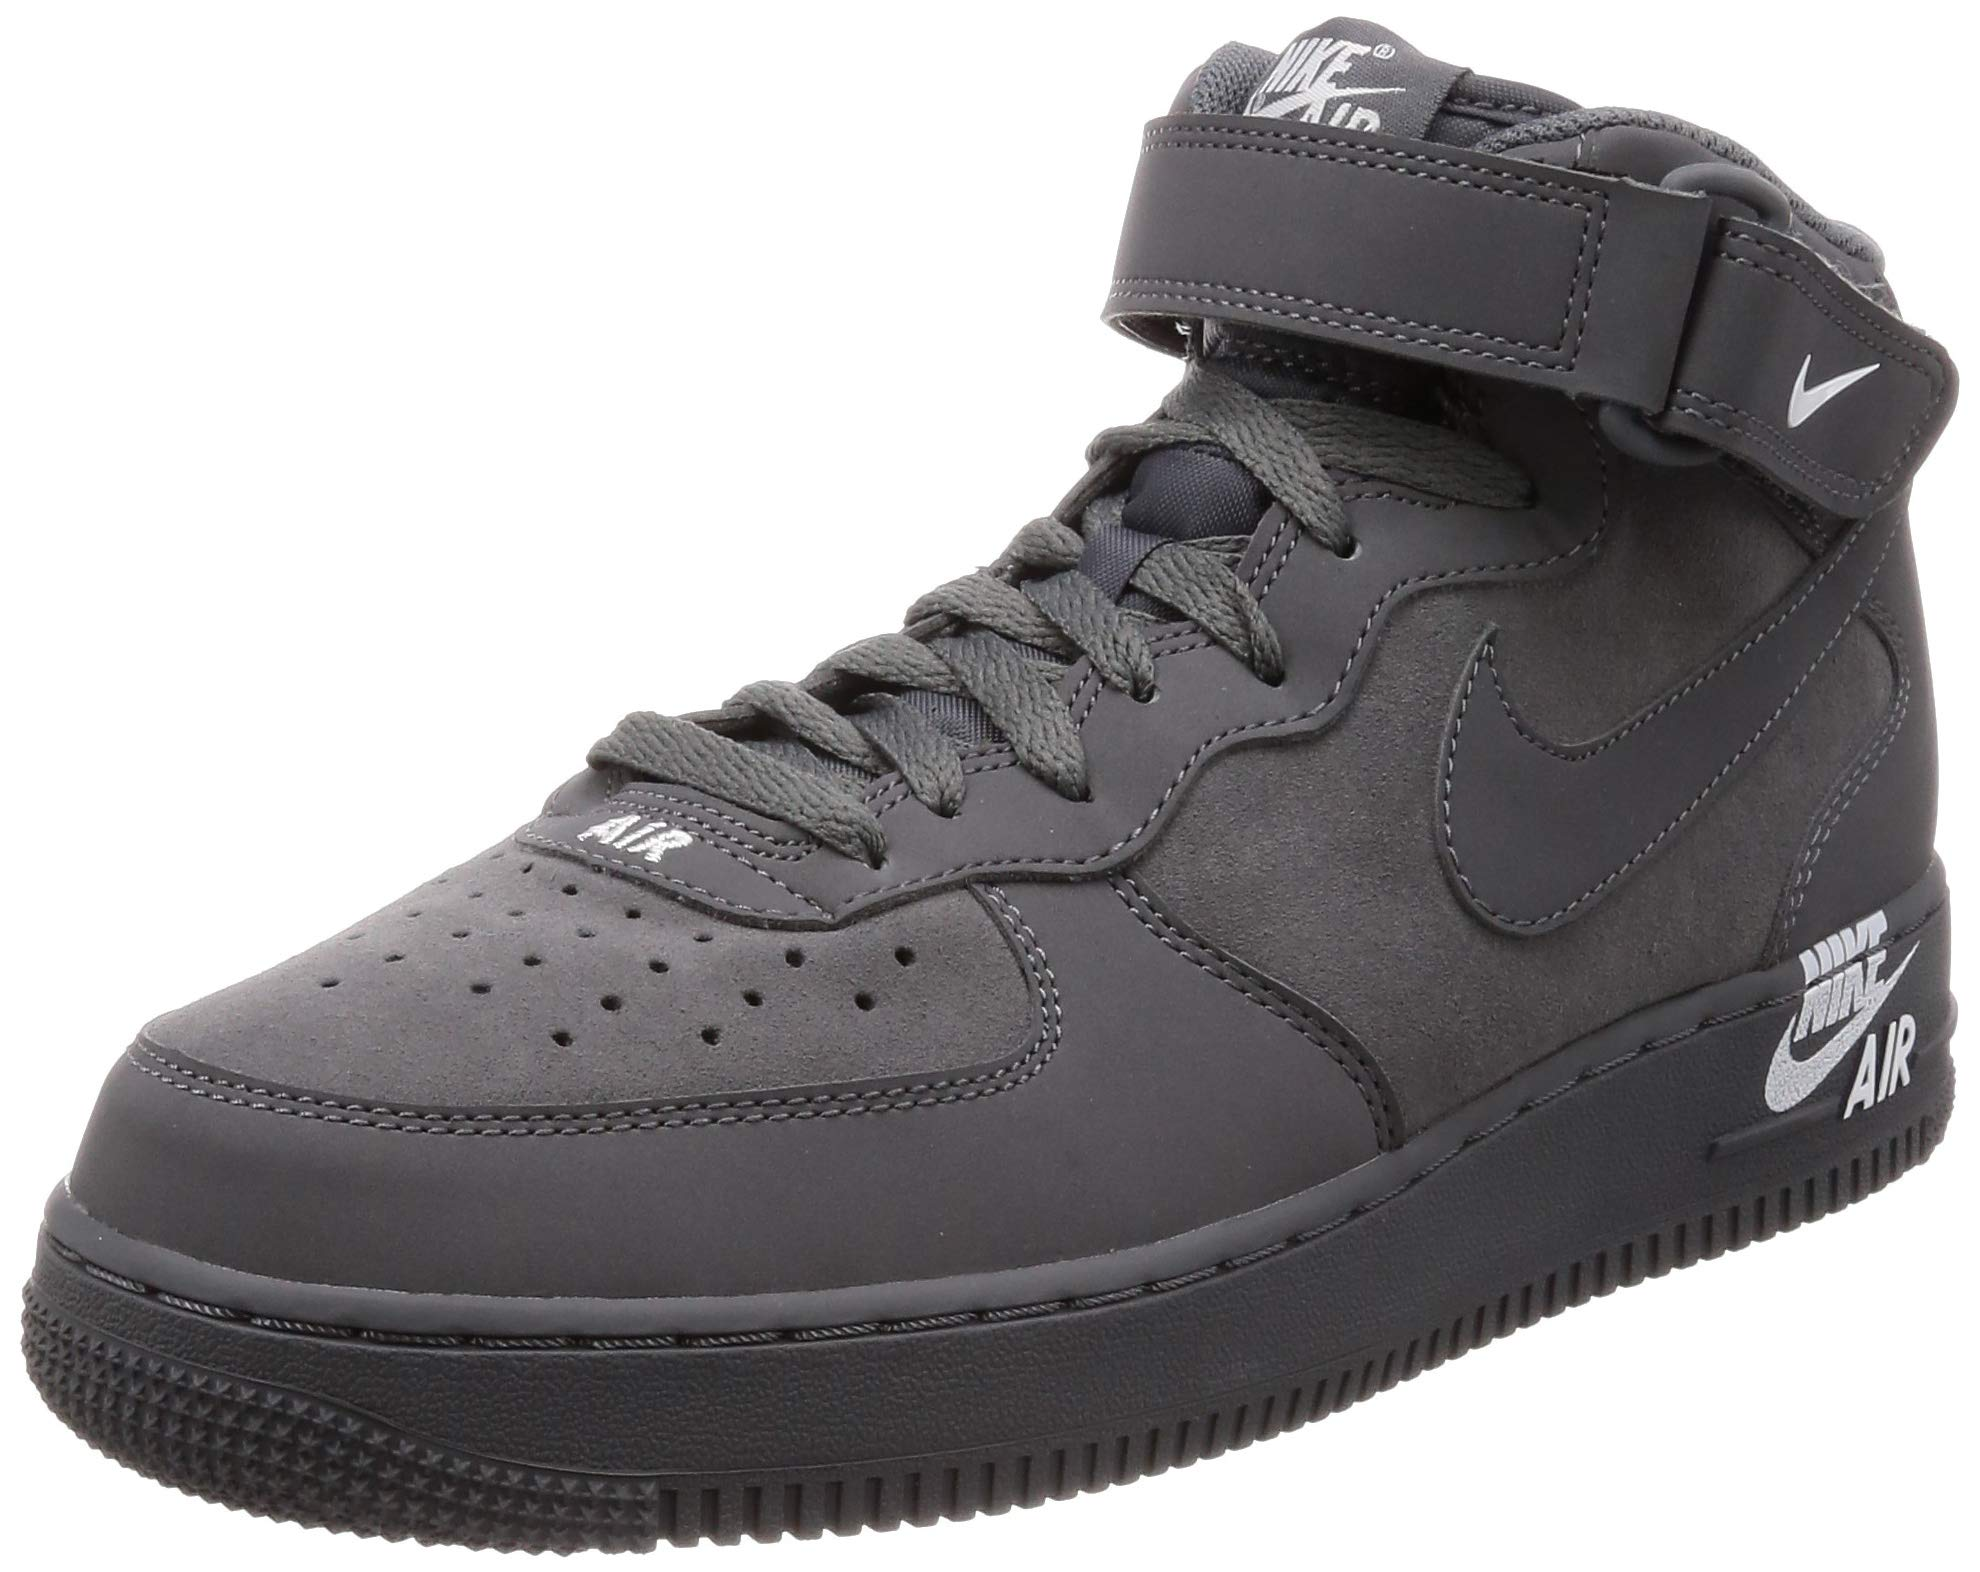 new style ec562 d6383 Galleon - Nike Mens Air Force 1 MID Emblem Shoes Dark Grey White 315123-048  Size 9